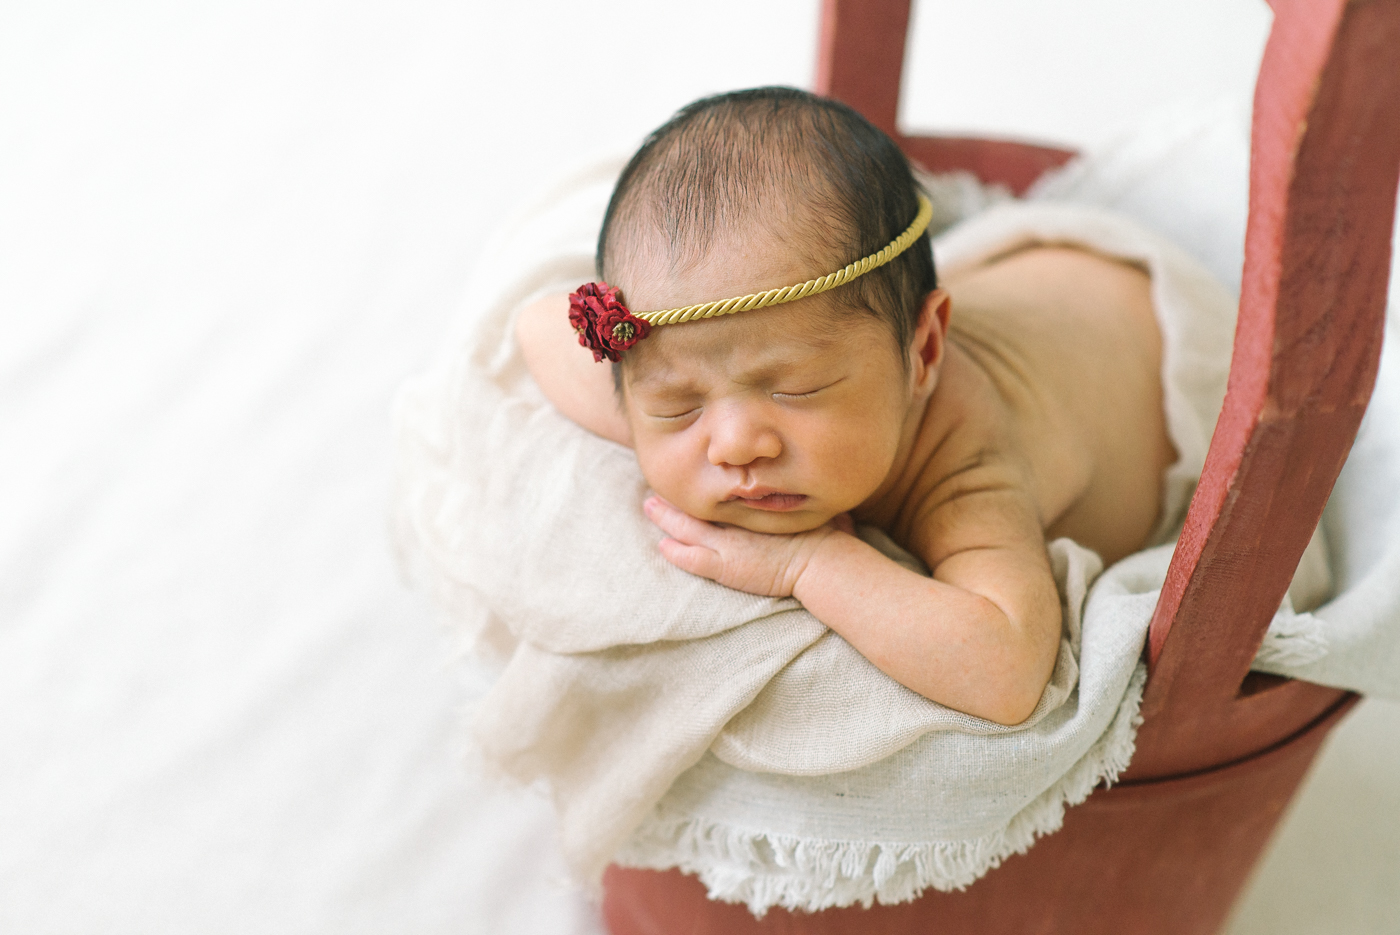 Best-Portland-Oregon-Newborn-photography-Sleeping-Baby-Maternity-Photographer-red-gold-flower-headband-basket-bucket-Shelley-Marie-Photography-2.jpg